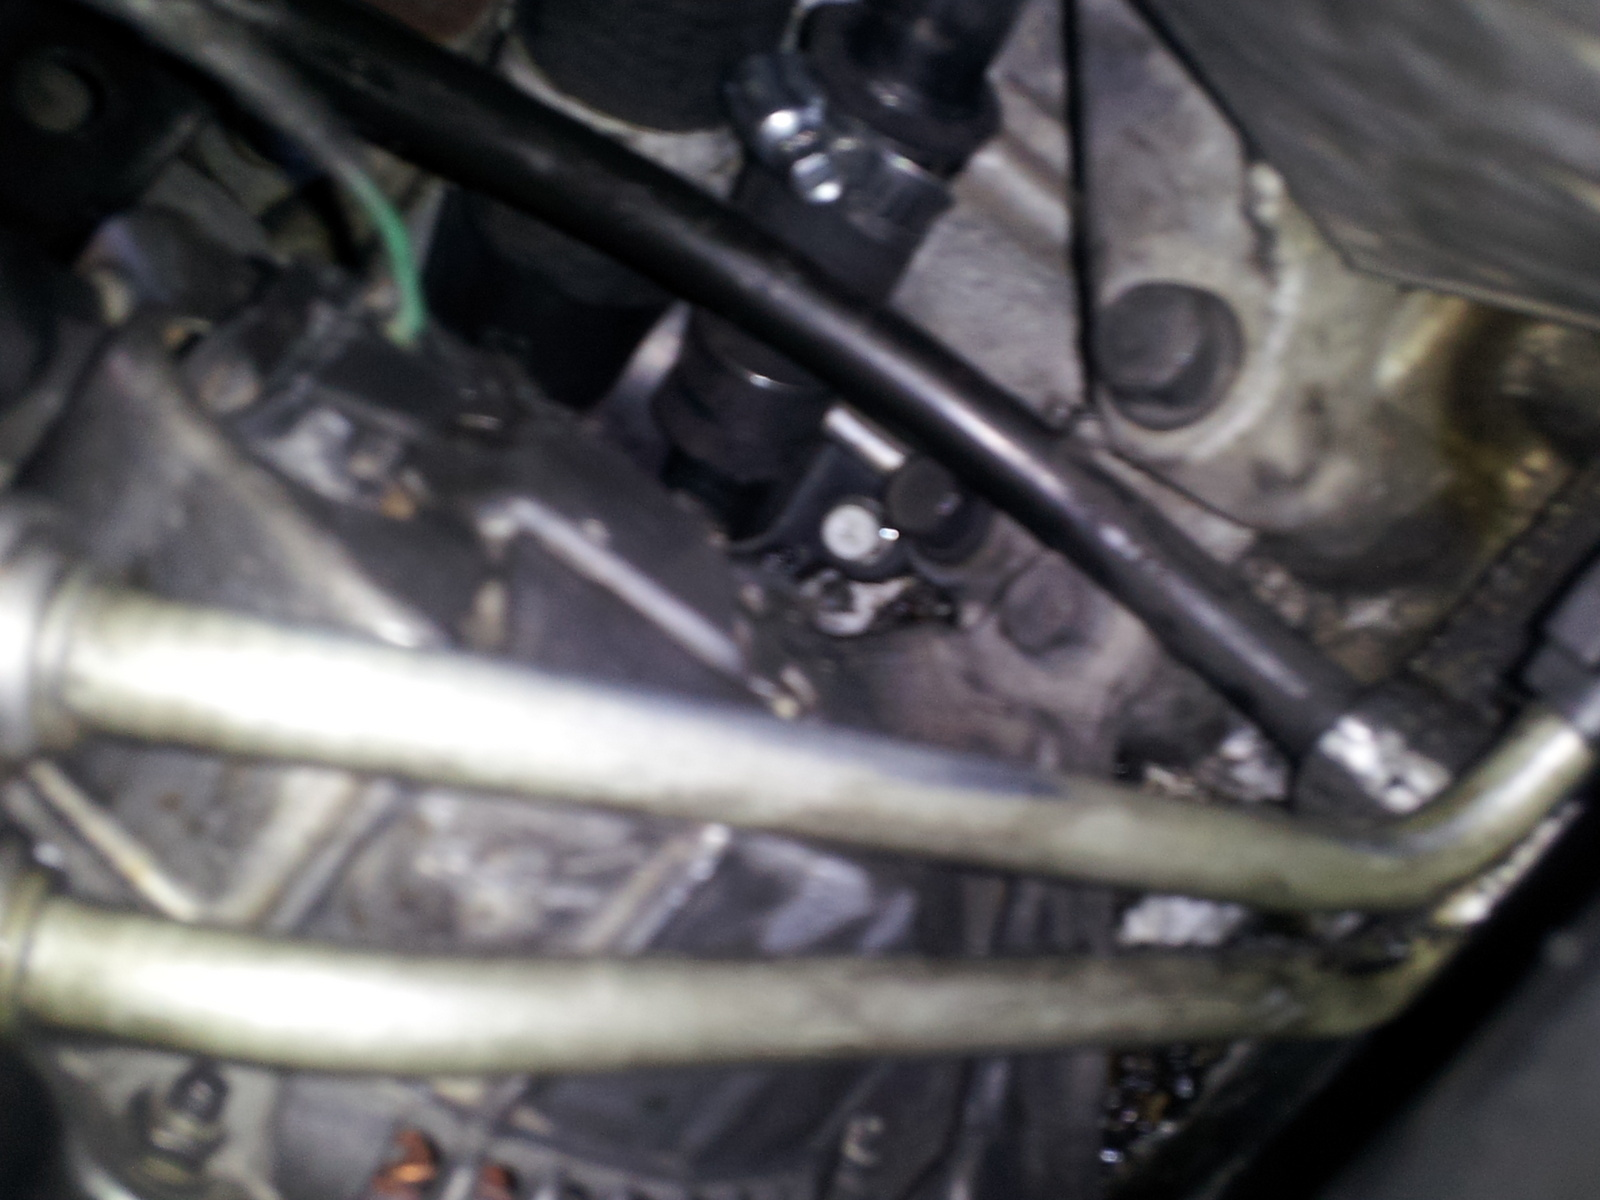 dodge intrepid questions 2 7 engine have a little hole that 2 7 engine have a little hole that keeps leaking coolant from the motor its not cracked and there is no grooves so no screw is missing we think it might